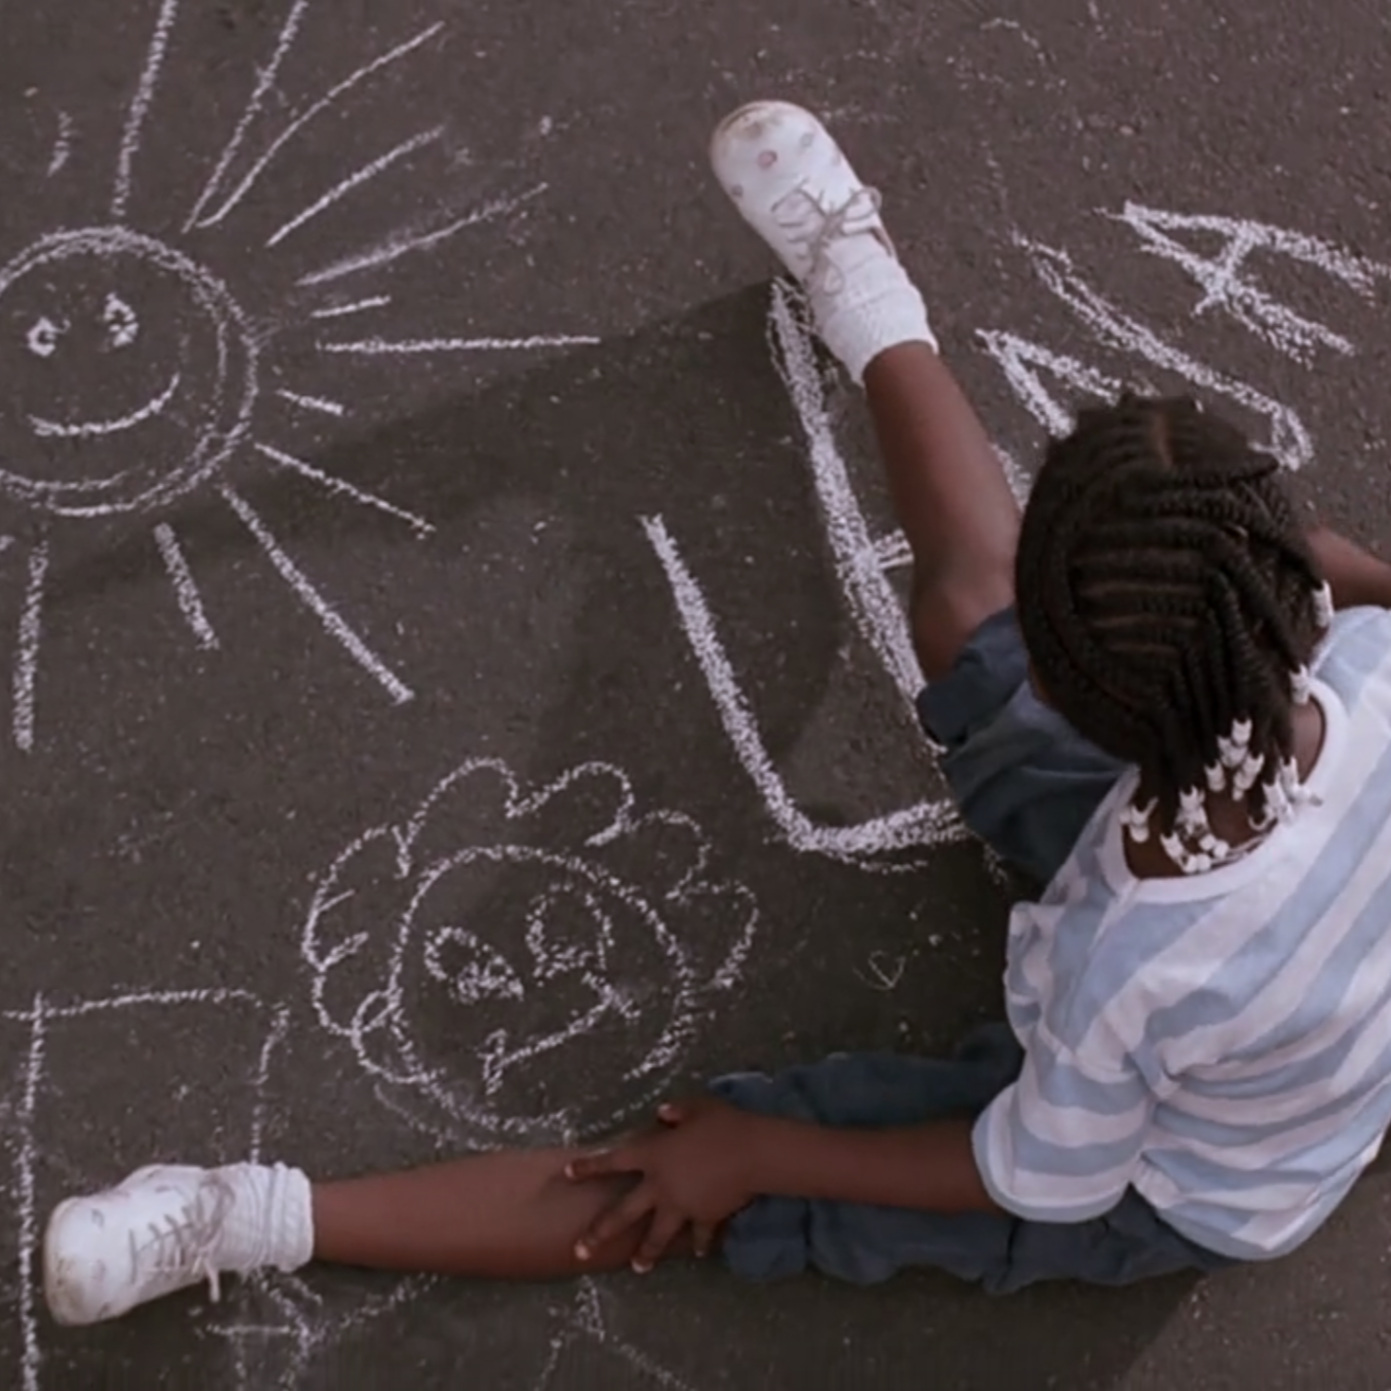 Image from  Do The Right Thing  by Spike Lee